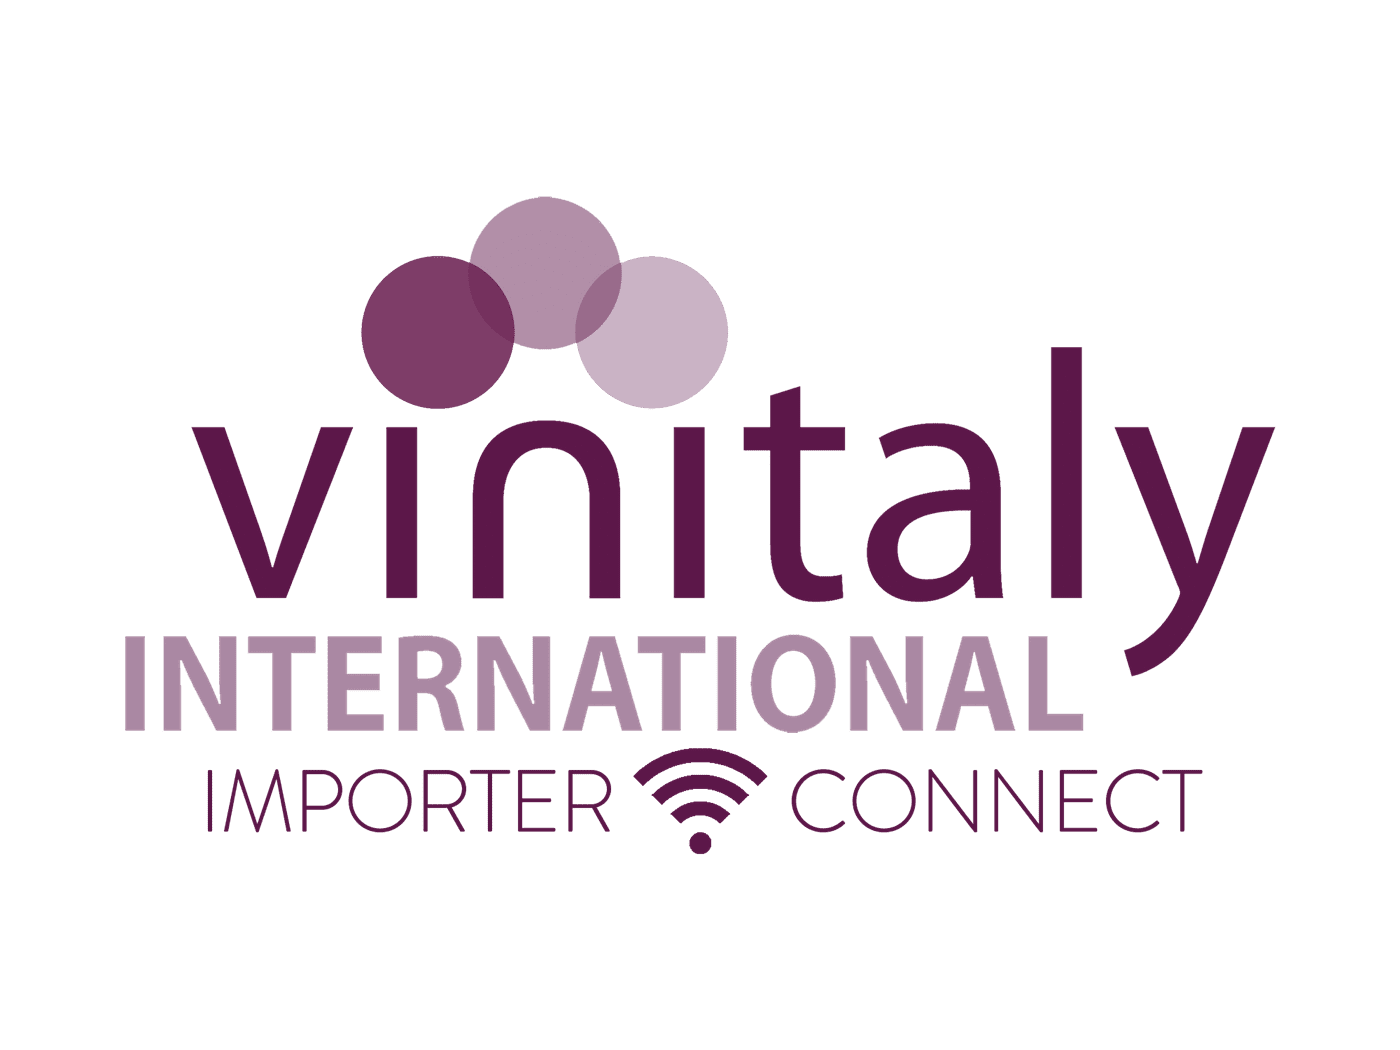 vinitaly international importer connect logo